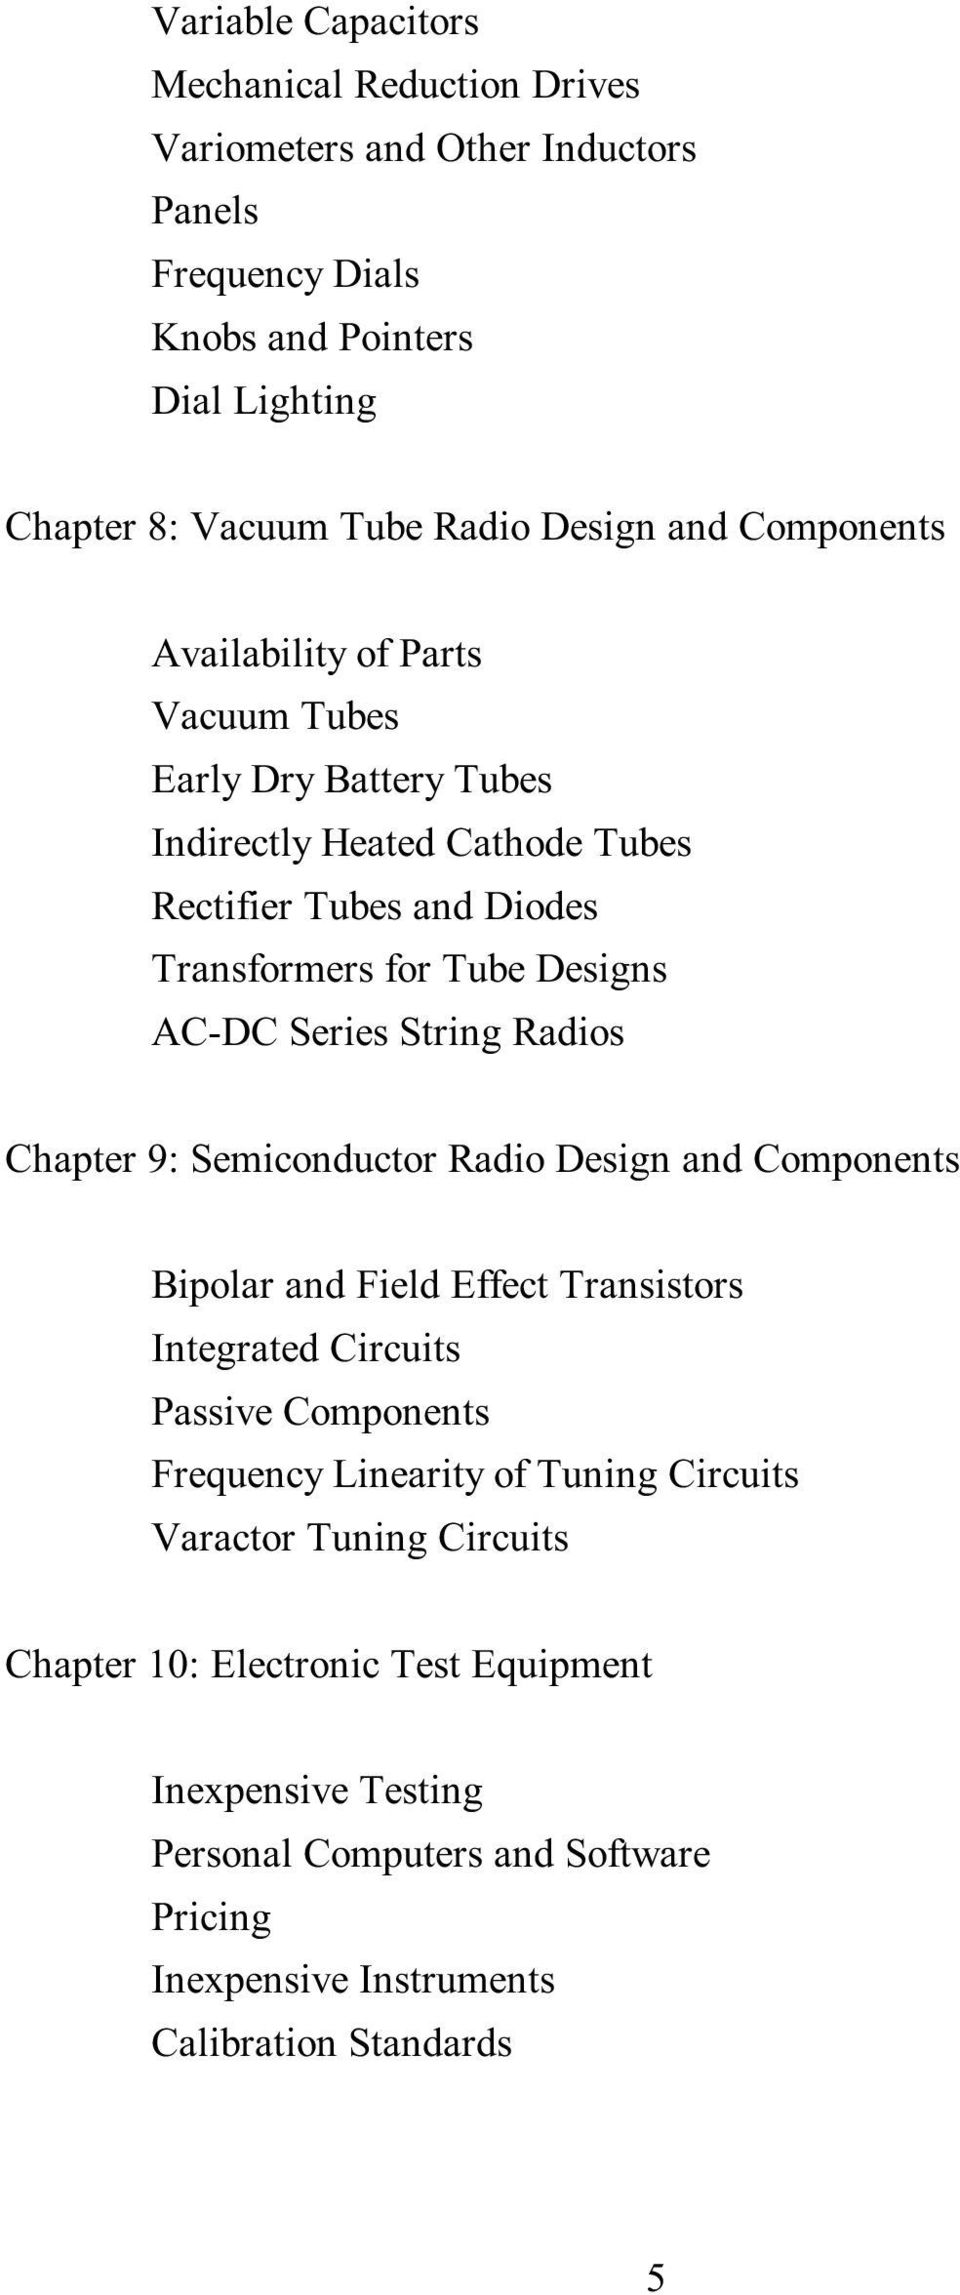 The New Radio Receiver Building Handbook Pdf Frequency Jfet Mixer Rf Circuit Amplifiercircuit Series String Radios Chapter 9 Semiconductor Design And Components Bipolar Field Effect Transistors